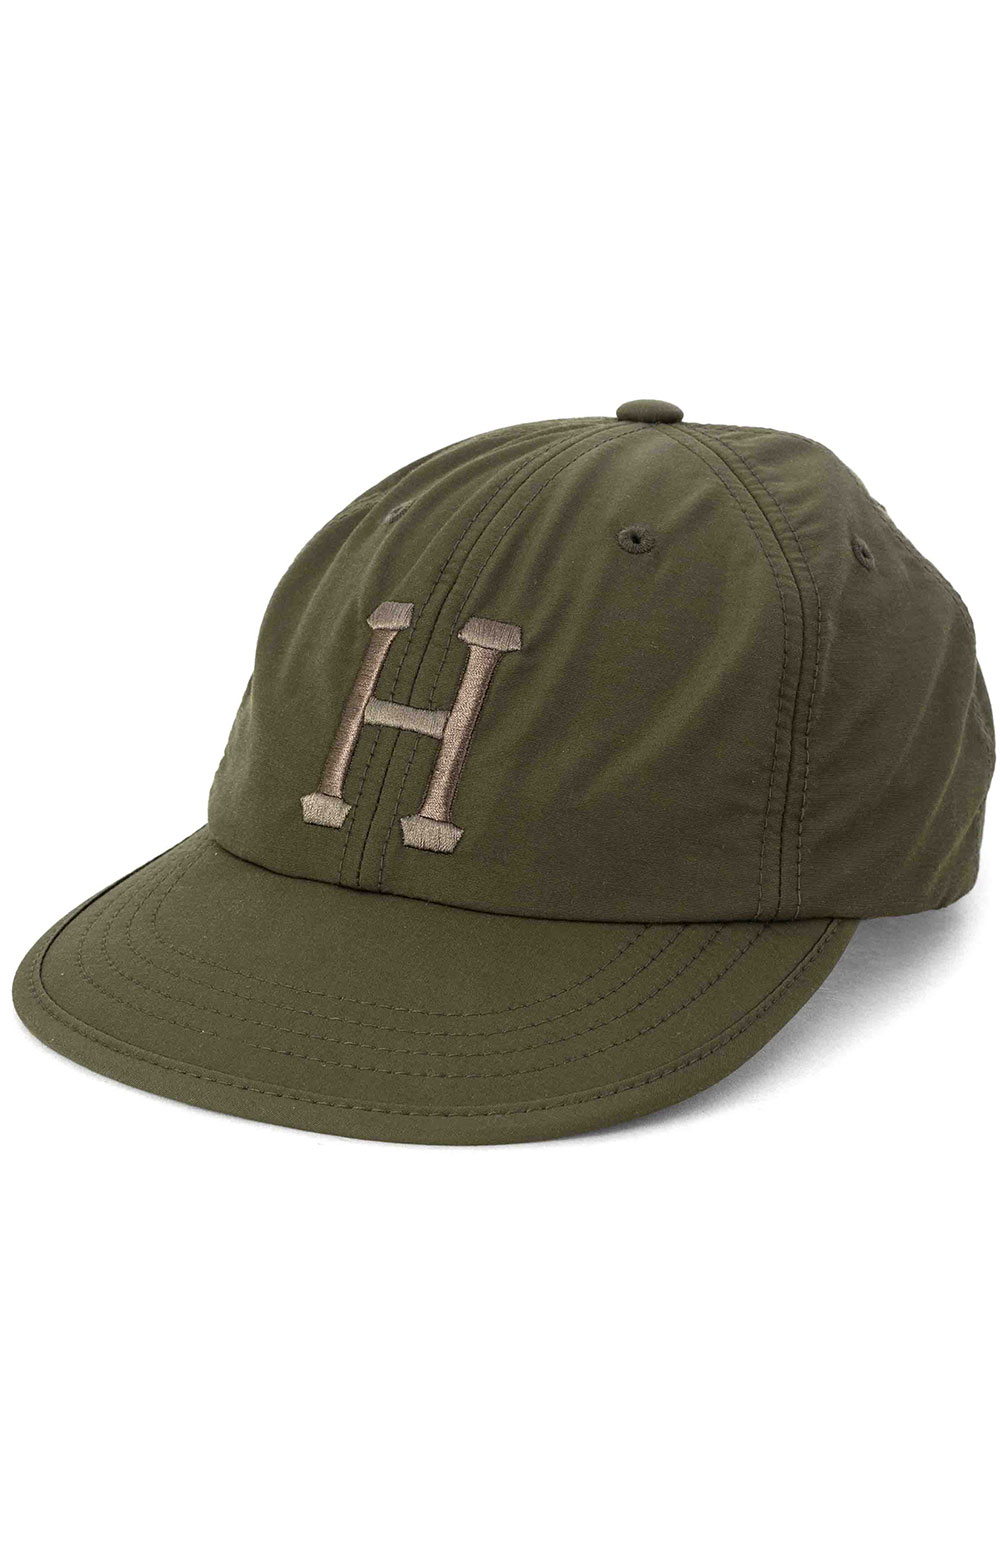 Formless Classic H 6 Panel Hat - Military Green